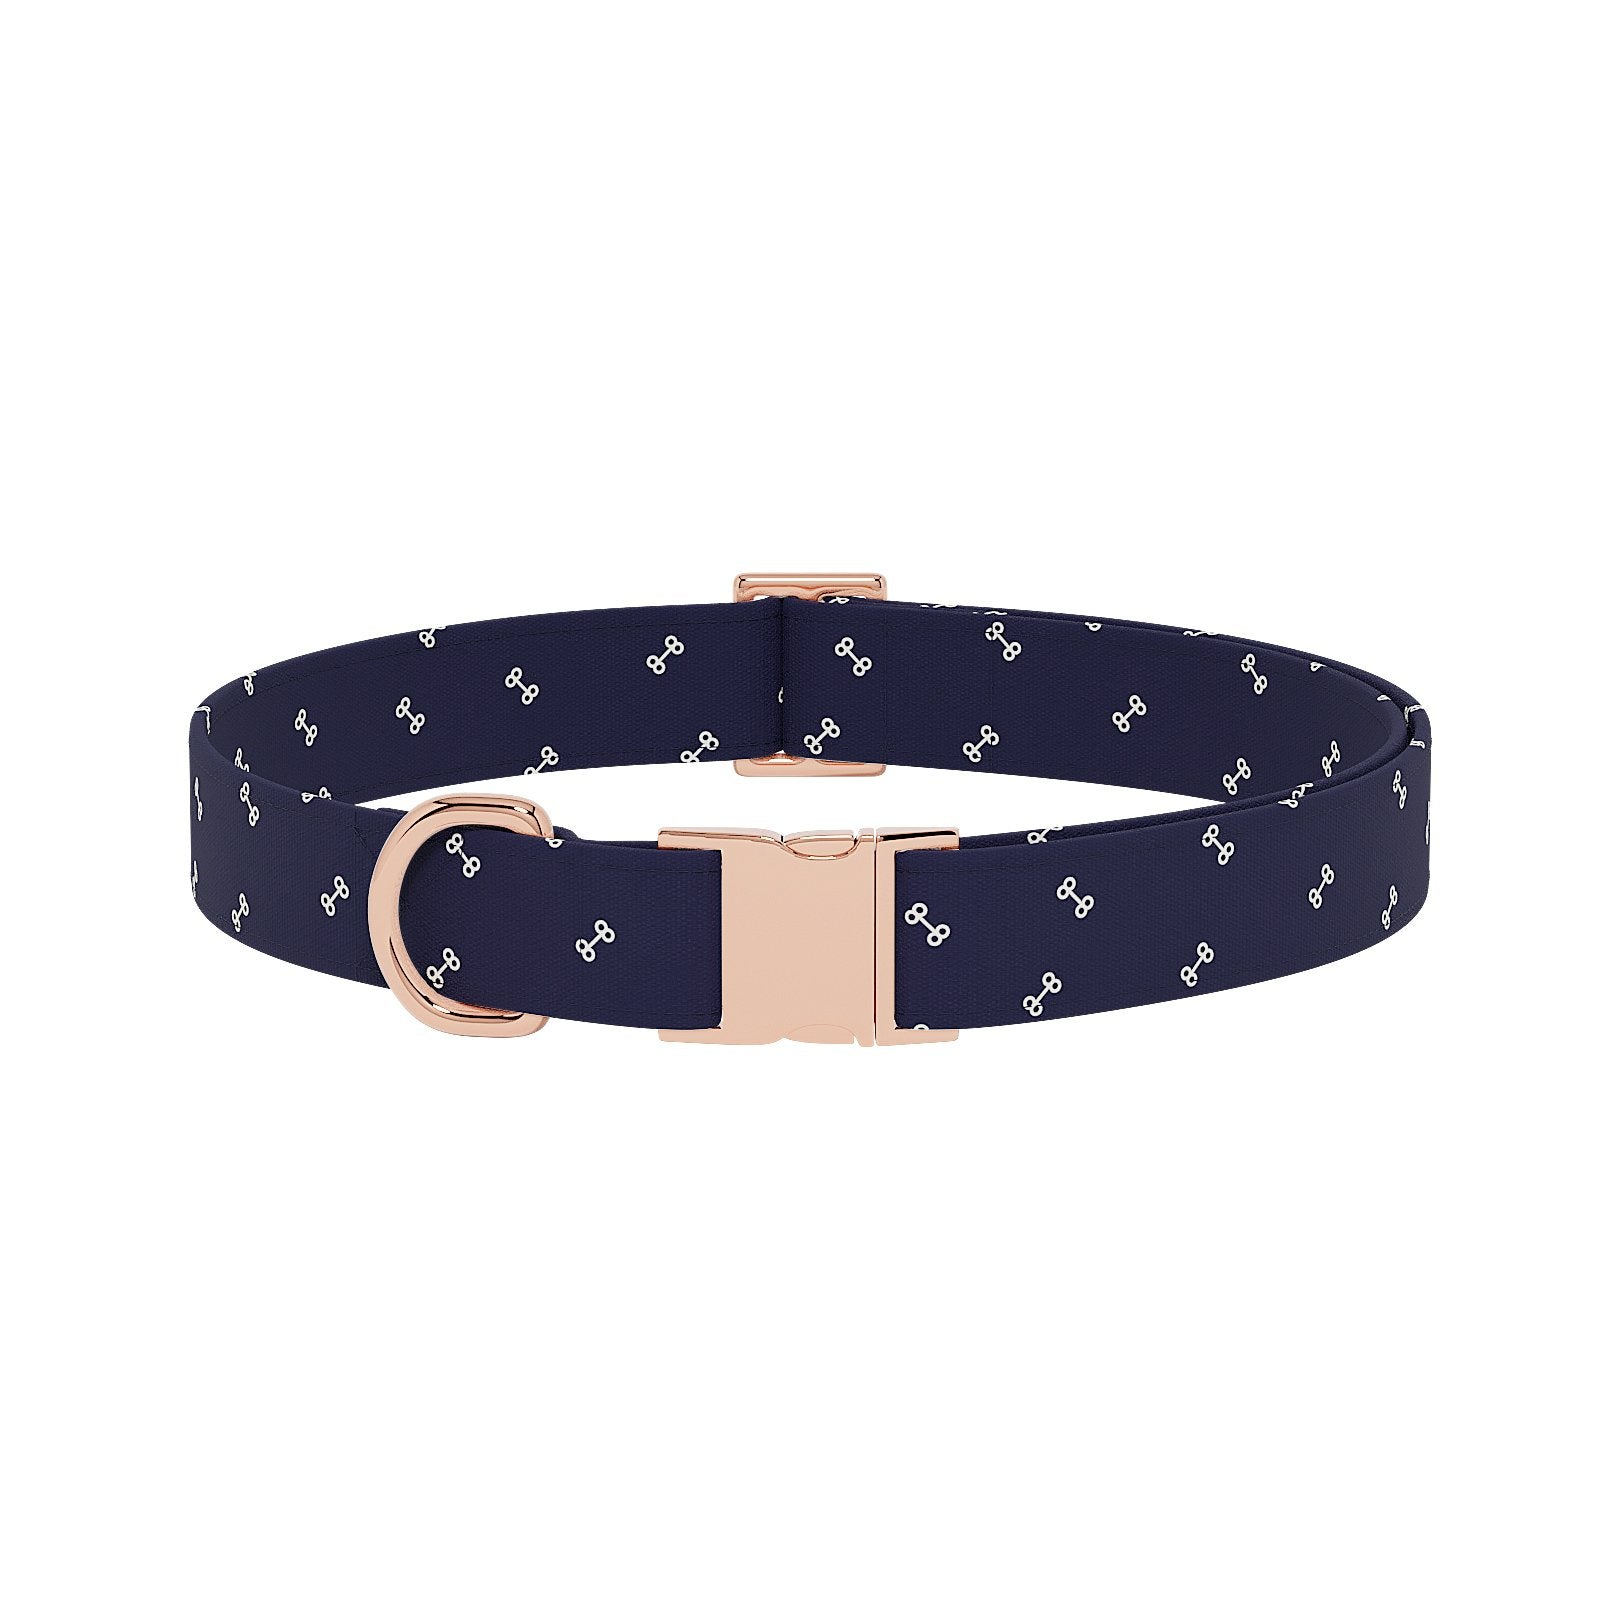 Bones Navy Dog Collar